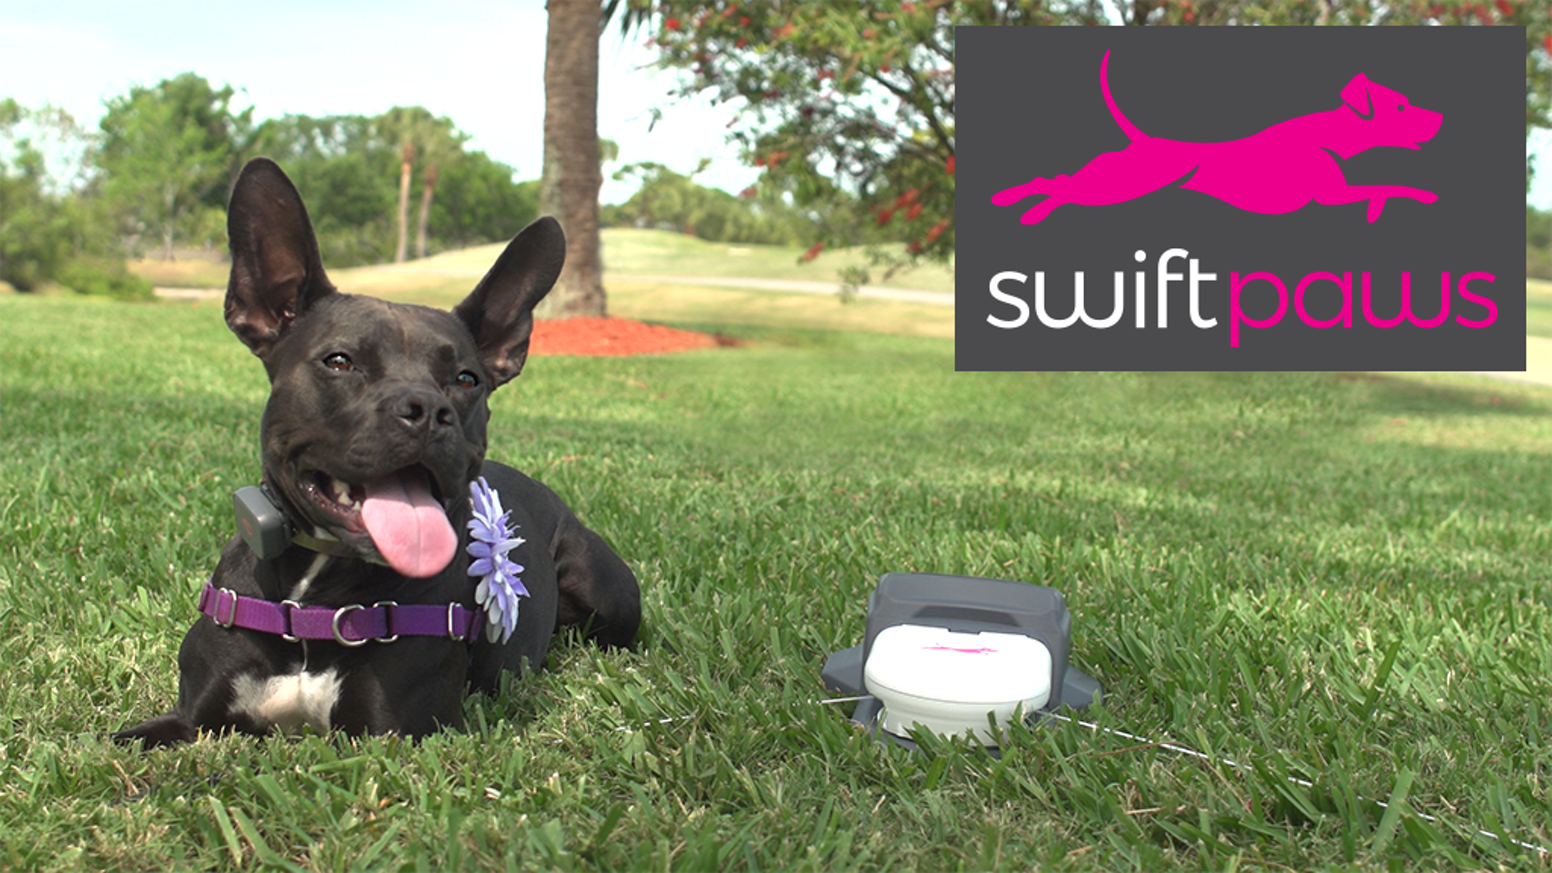 Swift Paws is an interactive pet toy for your best friend. Your dog (or cat) will love this exciting game of chase... and you will too!